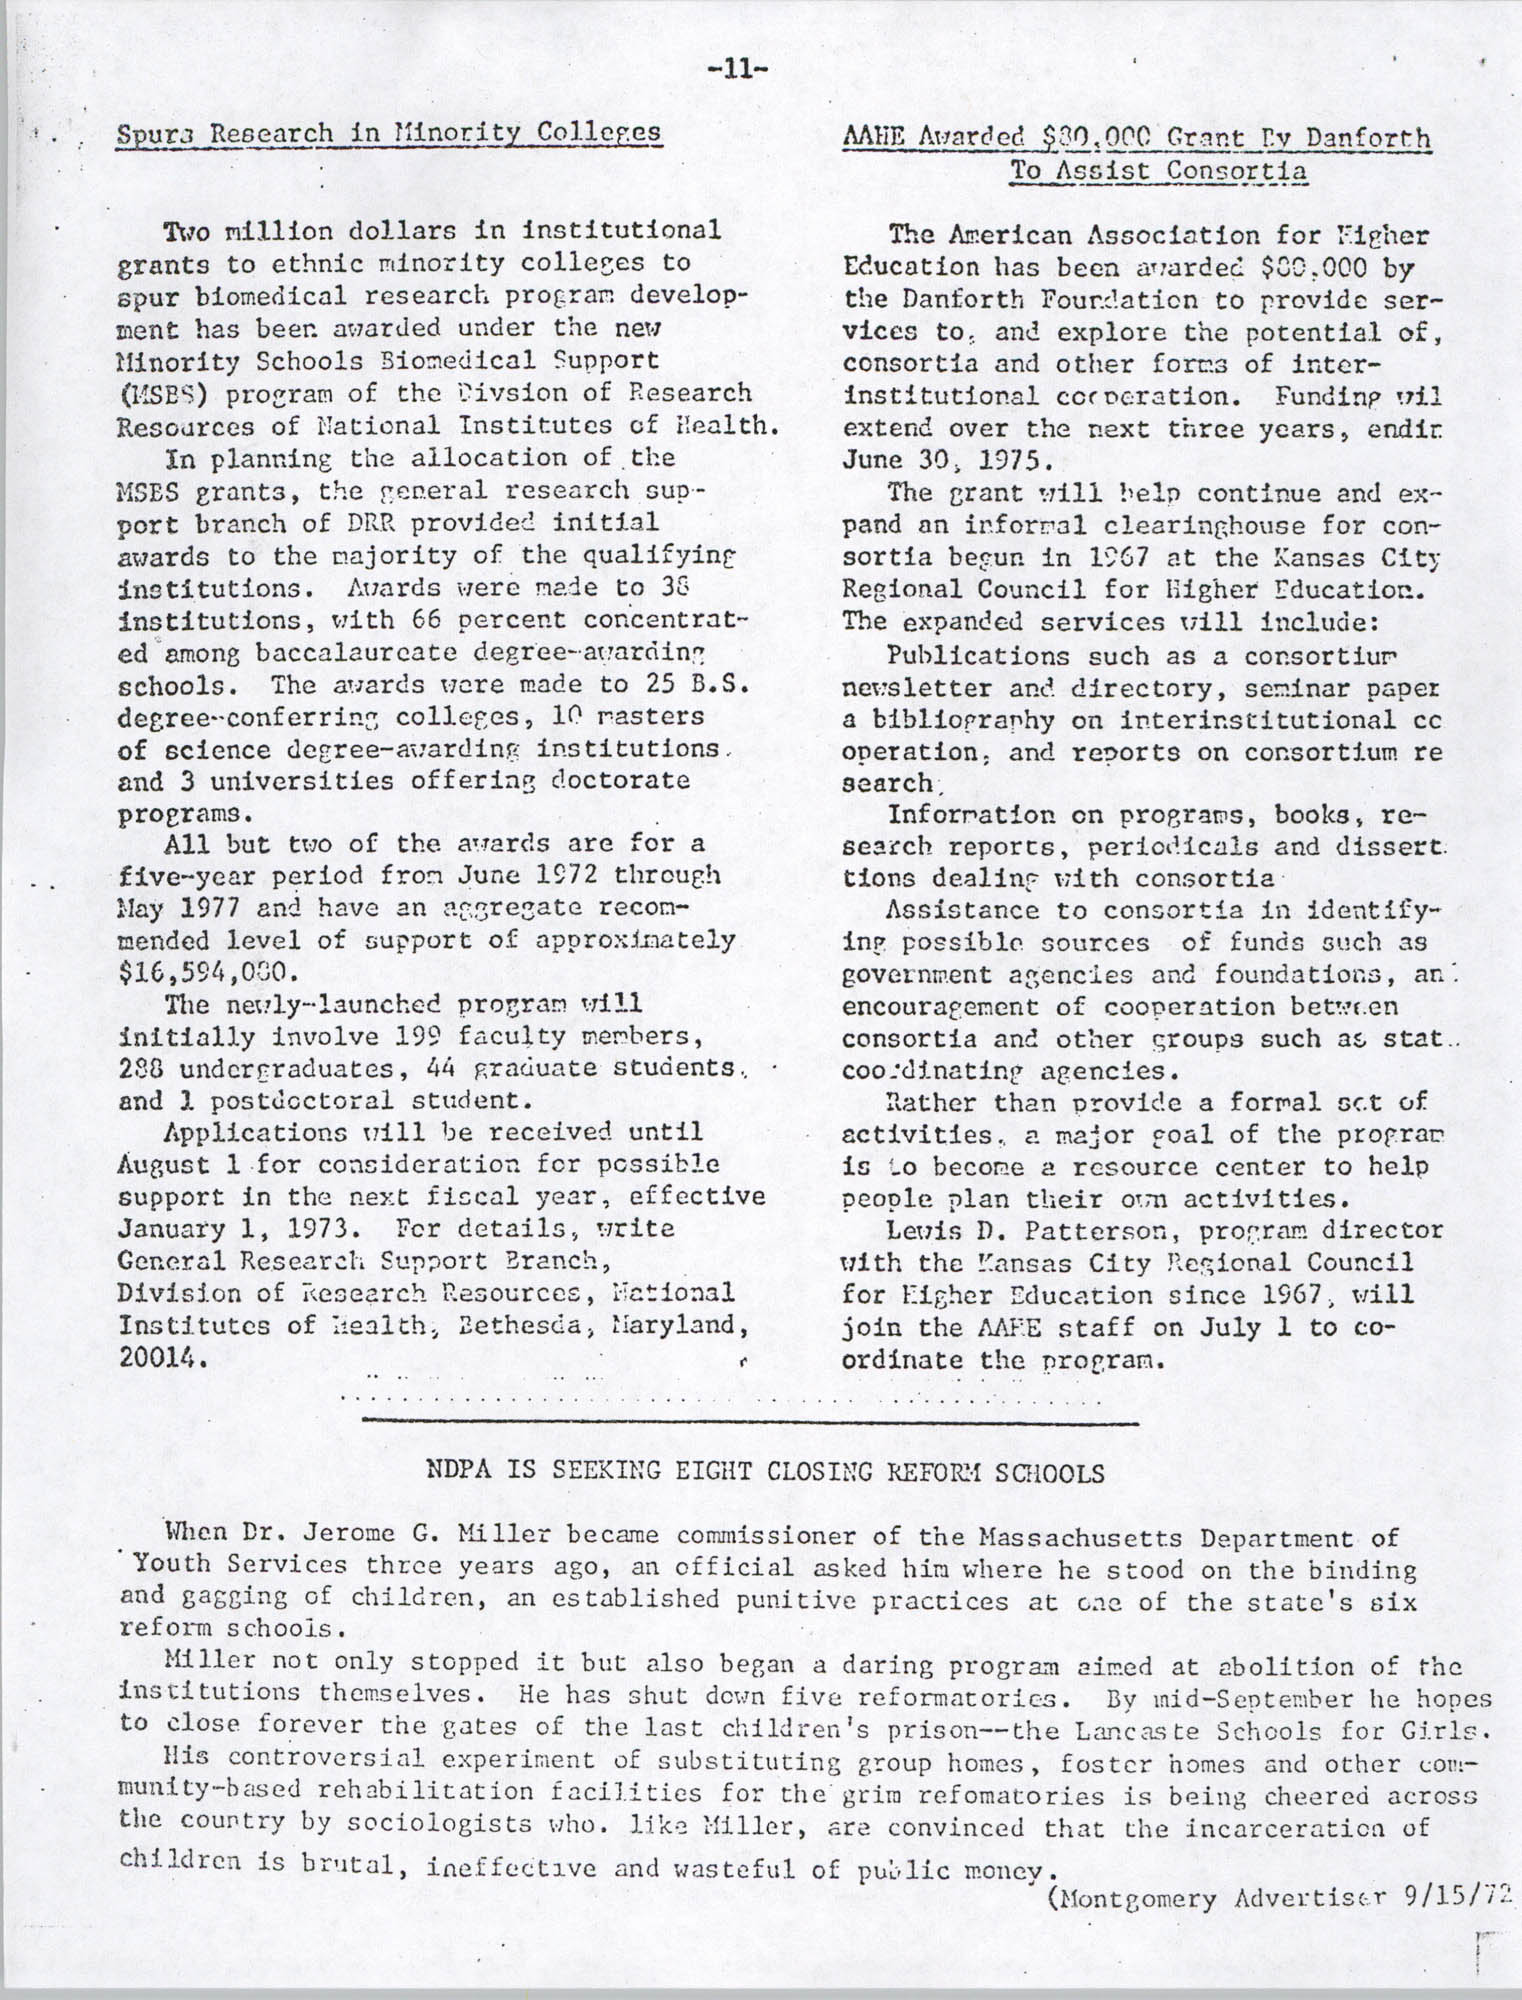 Black Educators Council for Human Services, Volume 1, Number 1, Page 11